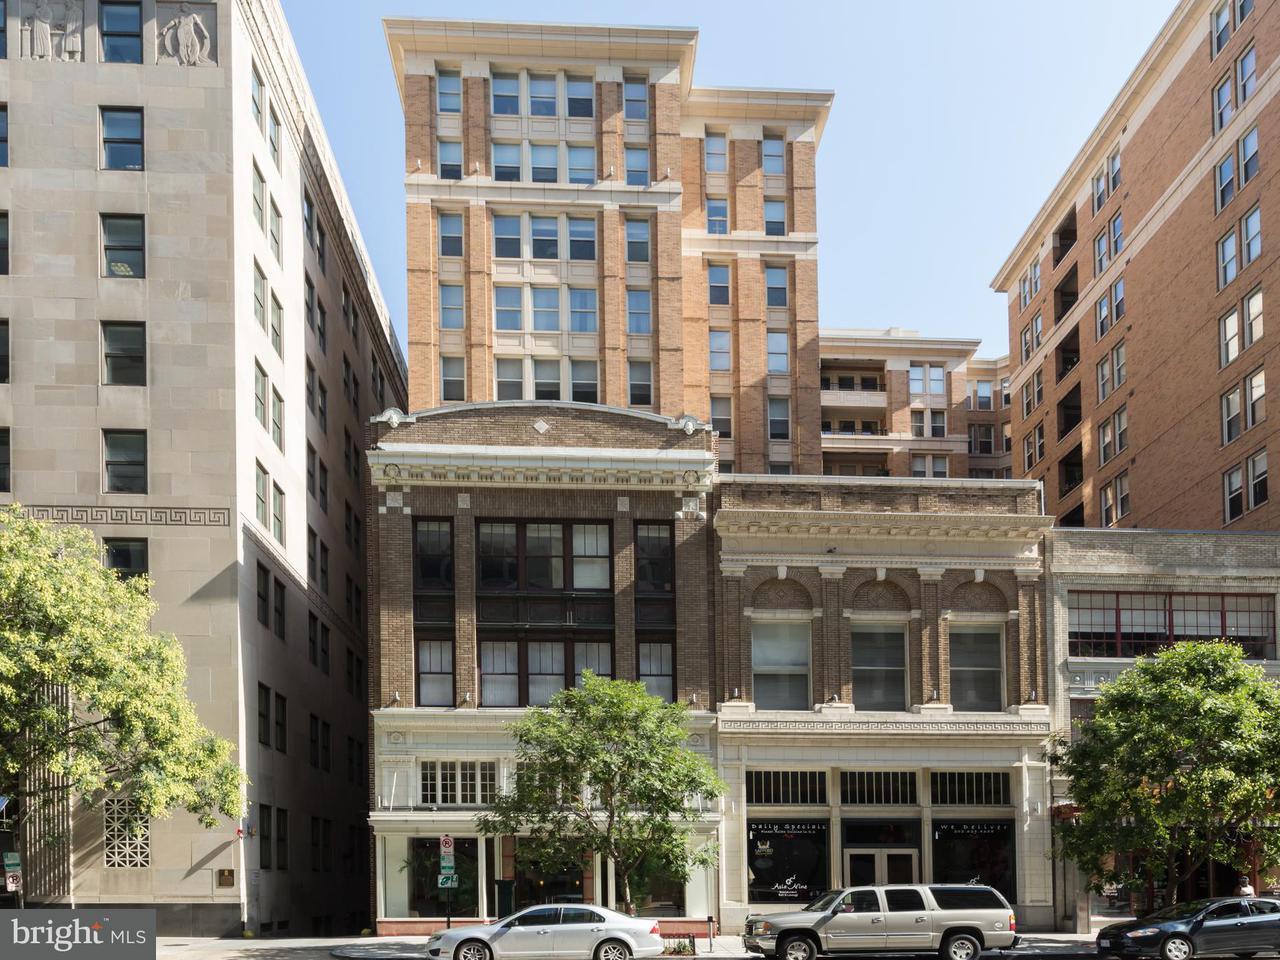 Condominium for Sale at 915 E St NW #613 Washington, District Of Columbia 20004 United States